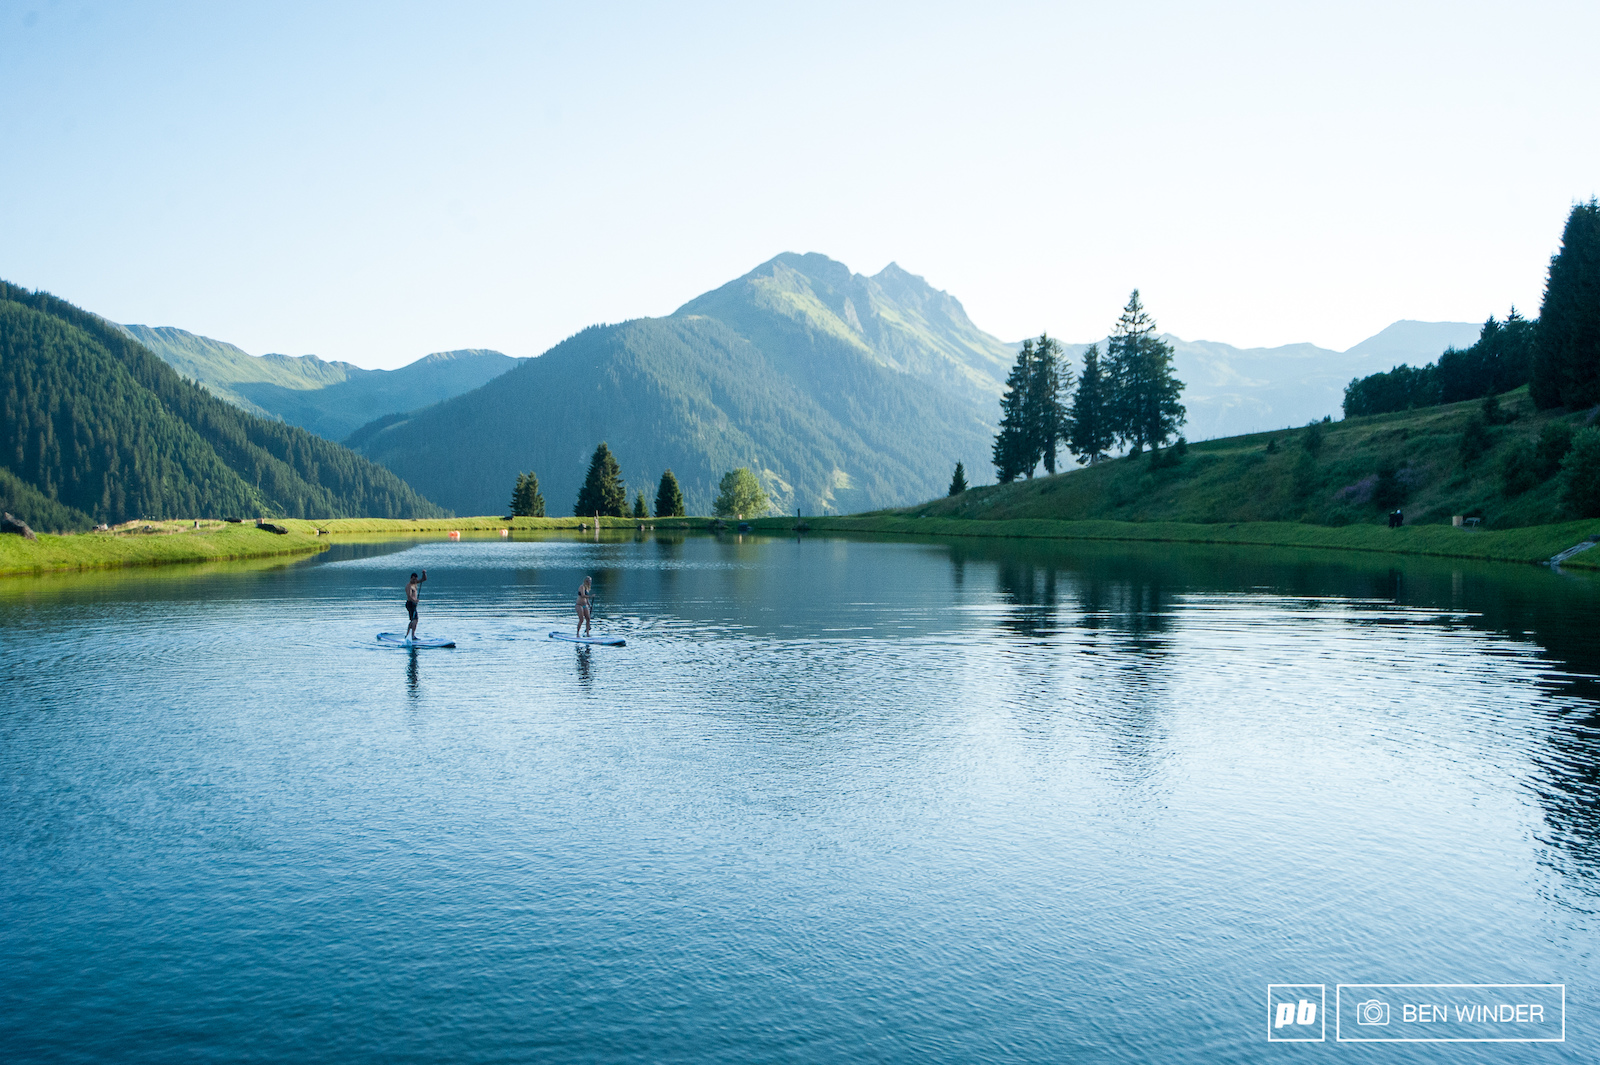 Paddle boards mountains and lakes. What more could you want